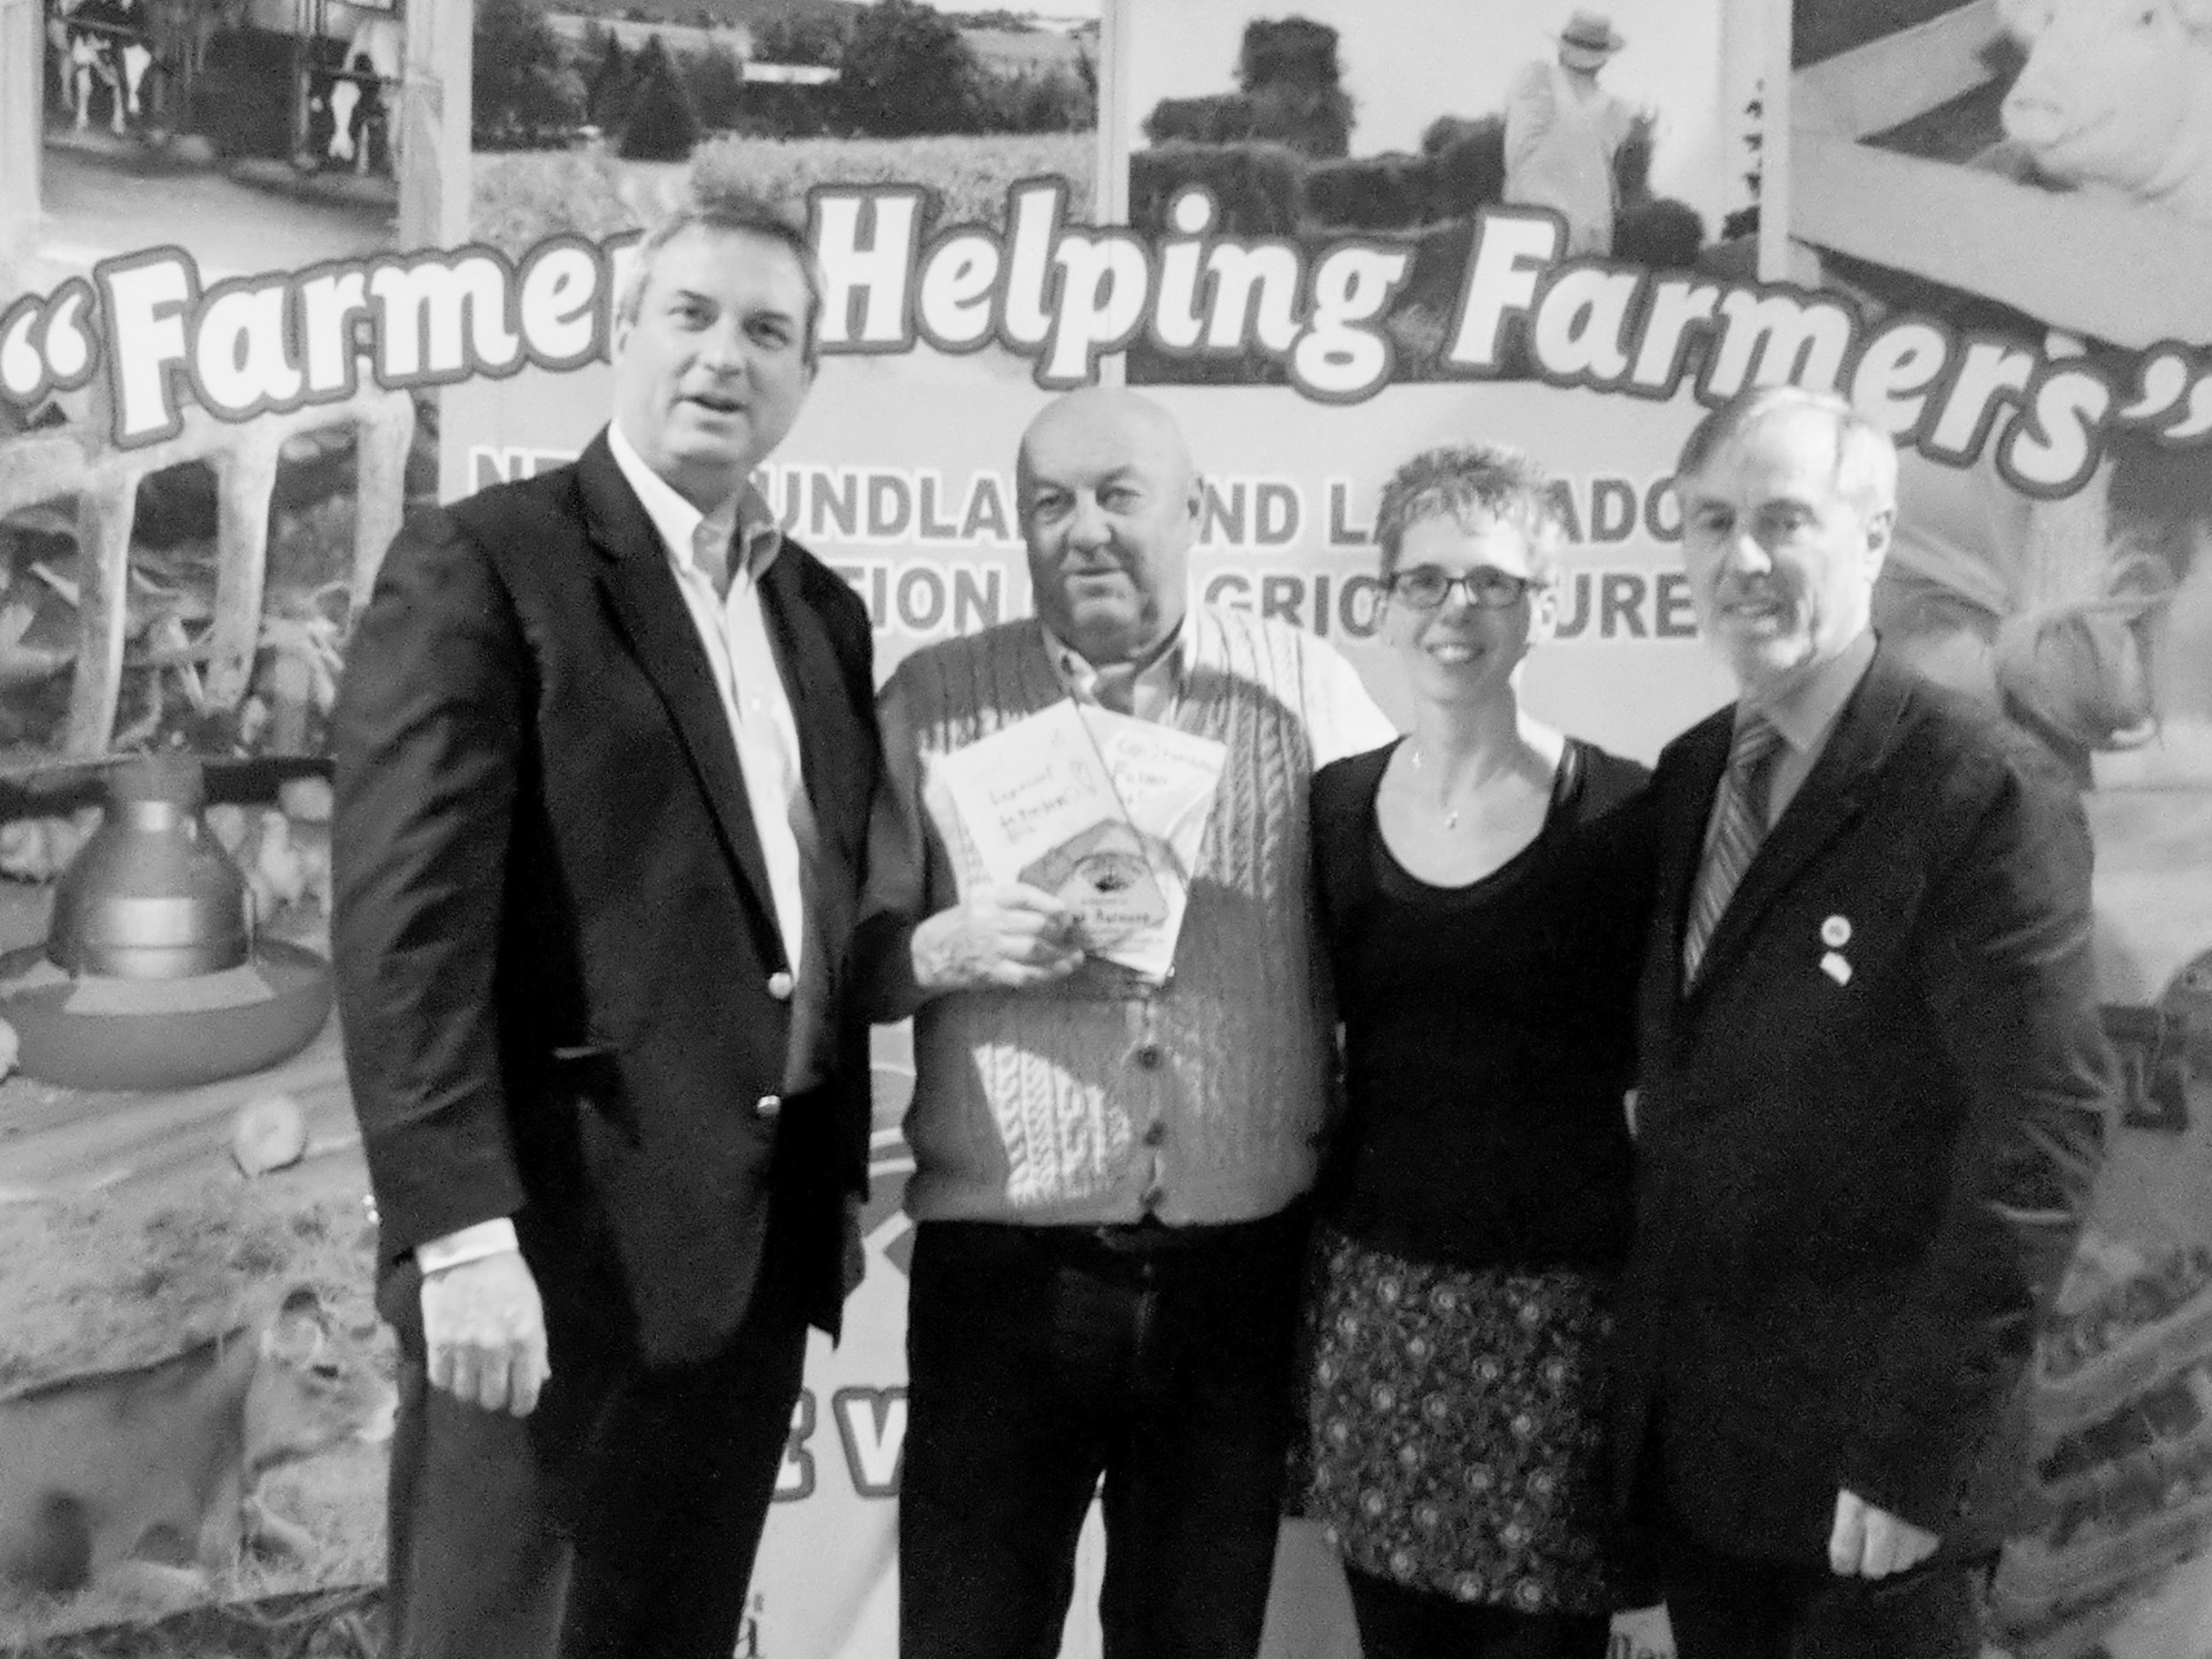 Bob Aylward received the NLFA's lifetime achievement award. From left, Fisheries and Land Resources Minister Gerry Byrne, Aylward, Nancy Ryan (a teacher at the school where Aylward mentors), and NLFA president Merv Wiseman.(Submitted photo)